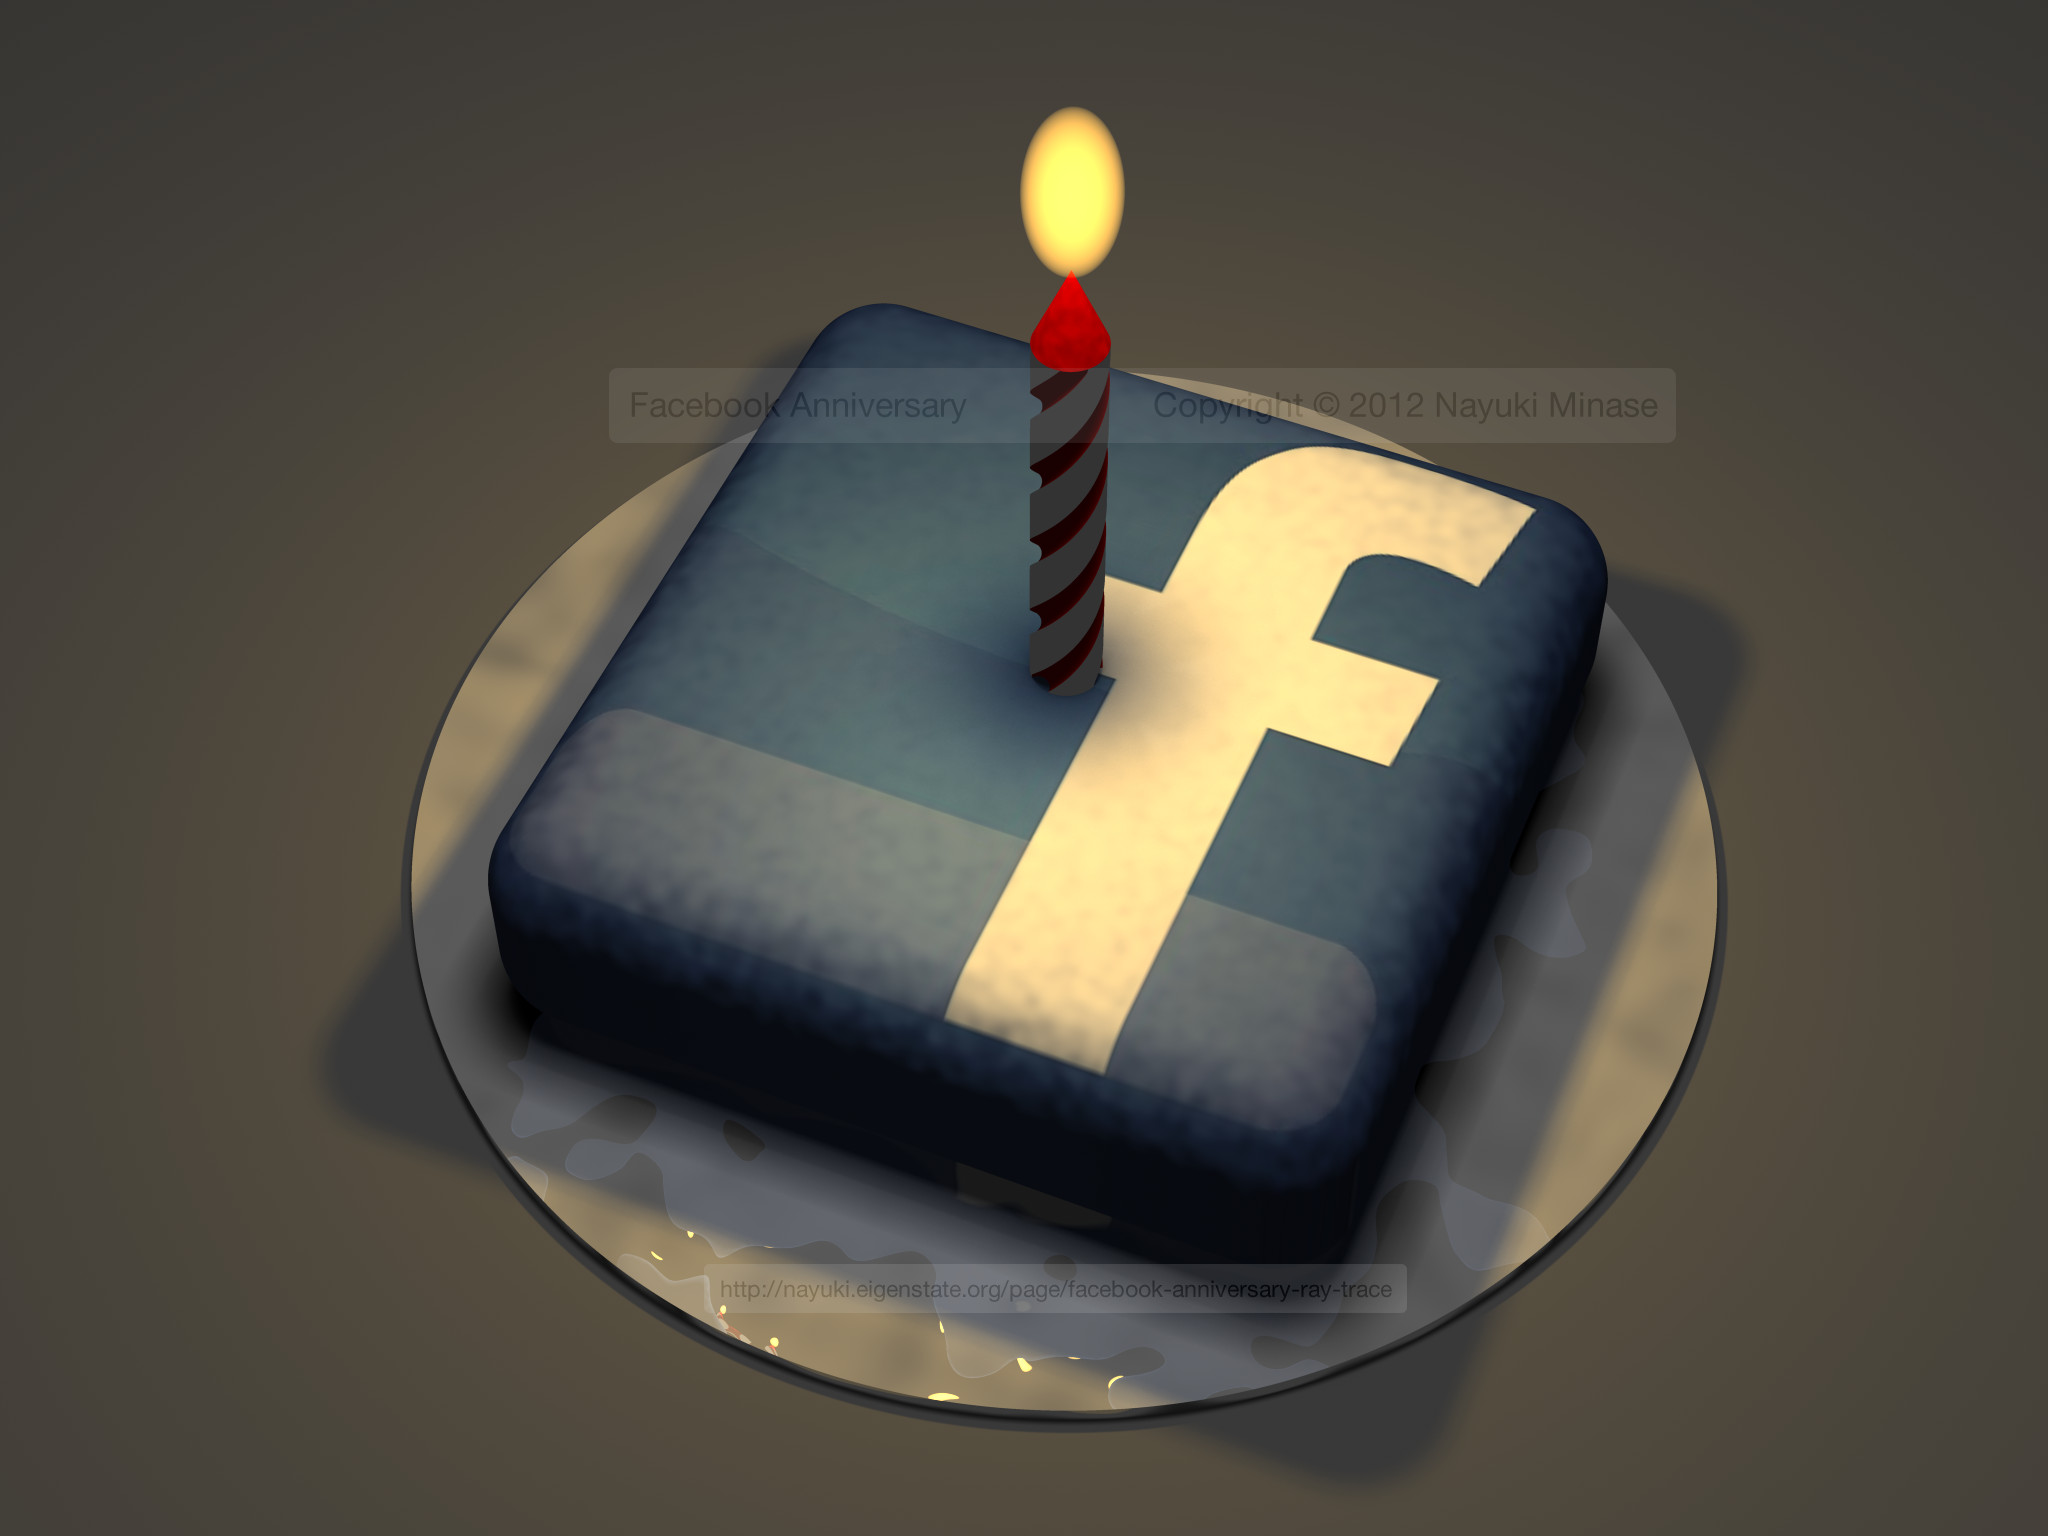 Best ideas about Facebook Birthday Cake . Save or Pin anniversary ray trace Now.